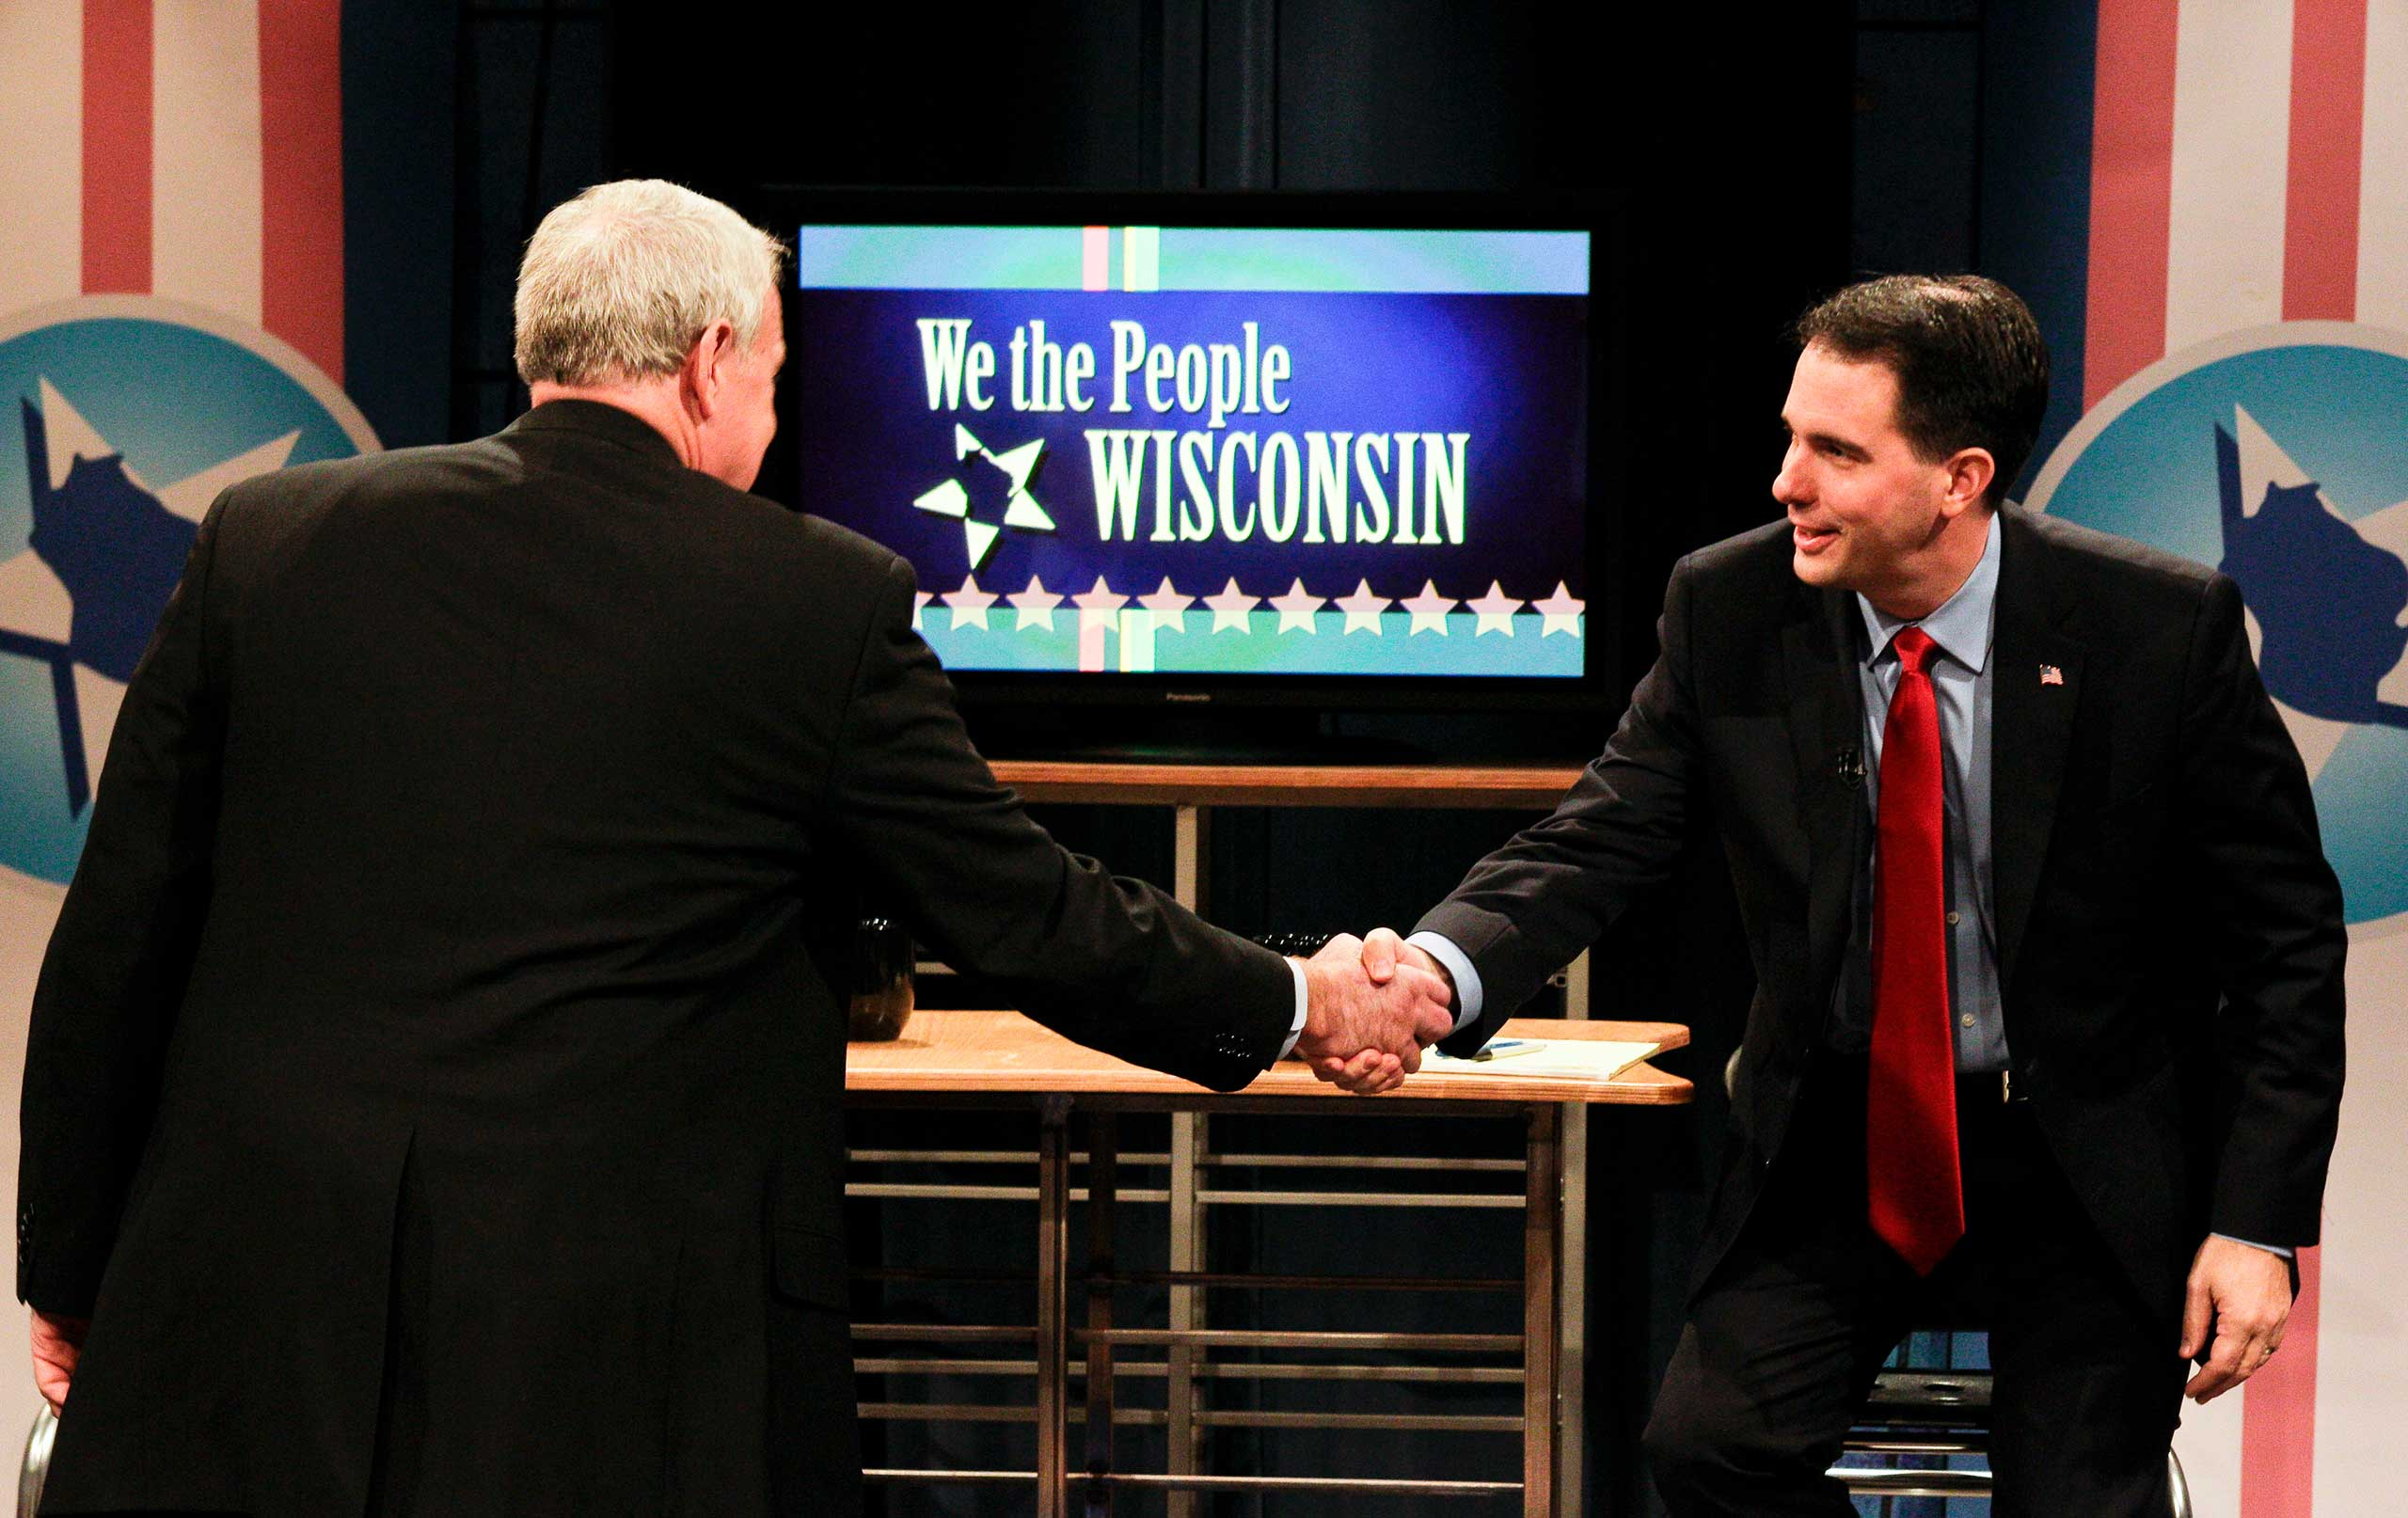 Wisconsin Governor candidates Milwaukee Mayor Tom Barrett, left, and Milwaukee County Executive Scott Walker greet each other before their final debate in Madison, Wis., on Oct. 29, 2010.